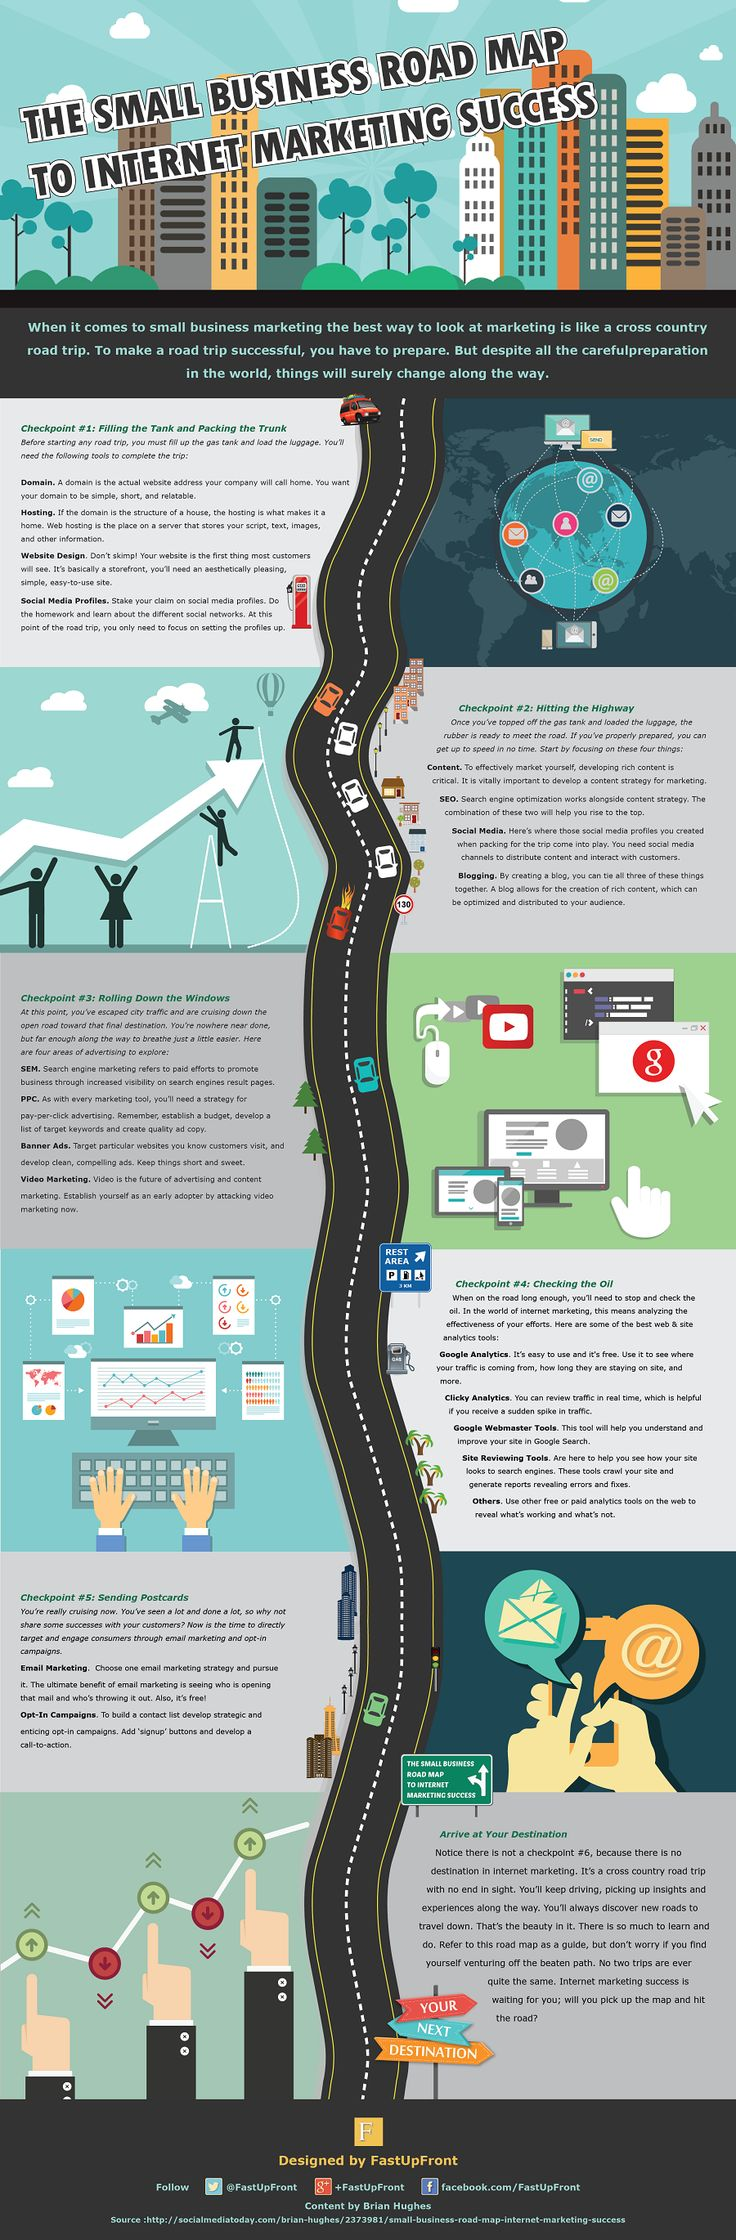 The Small Business Road Map to Internet Marketing Success